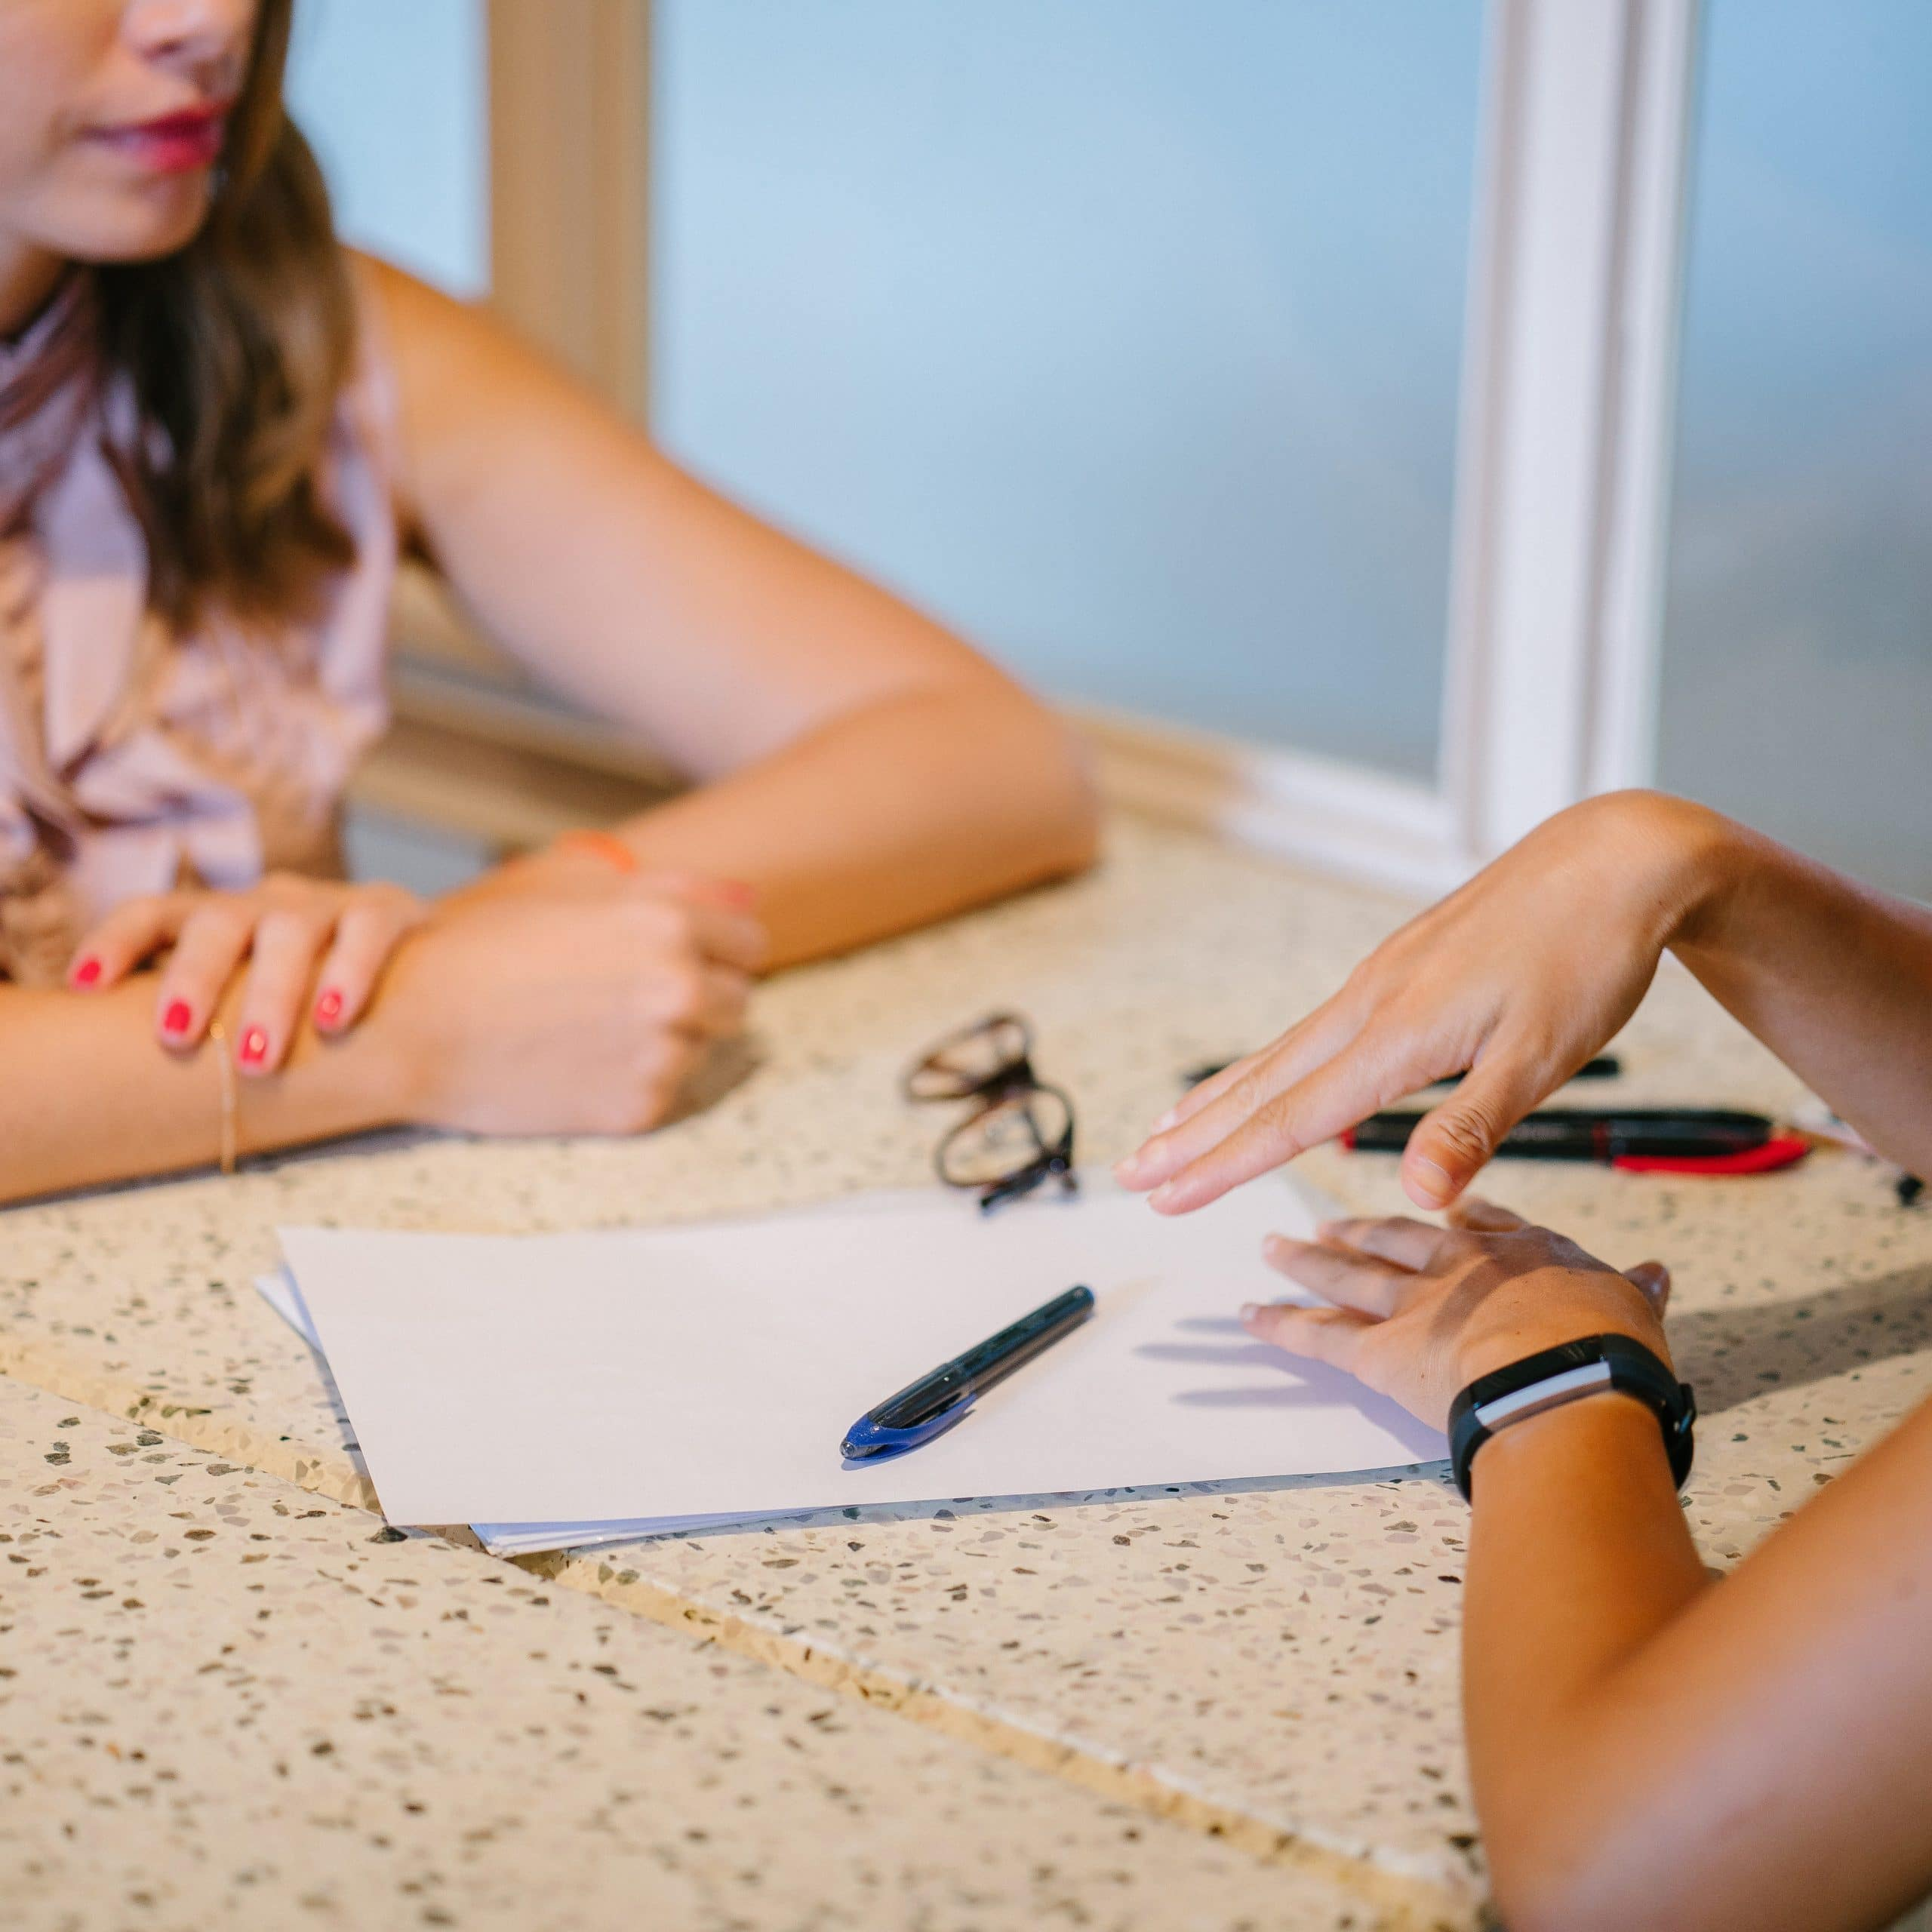 Two women with painted nails sit at a table while having a conversation over psychological evaluation paperwork.